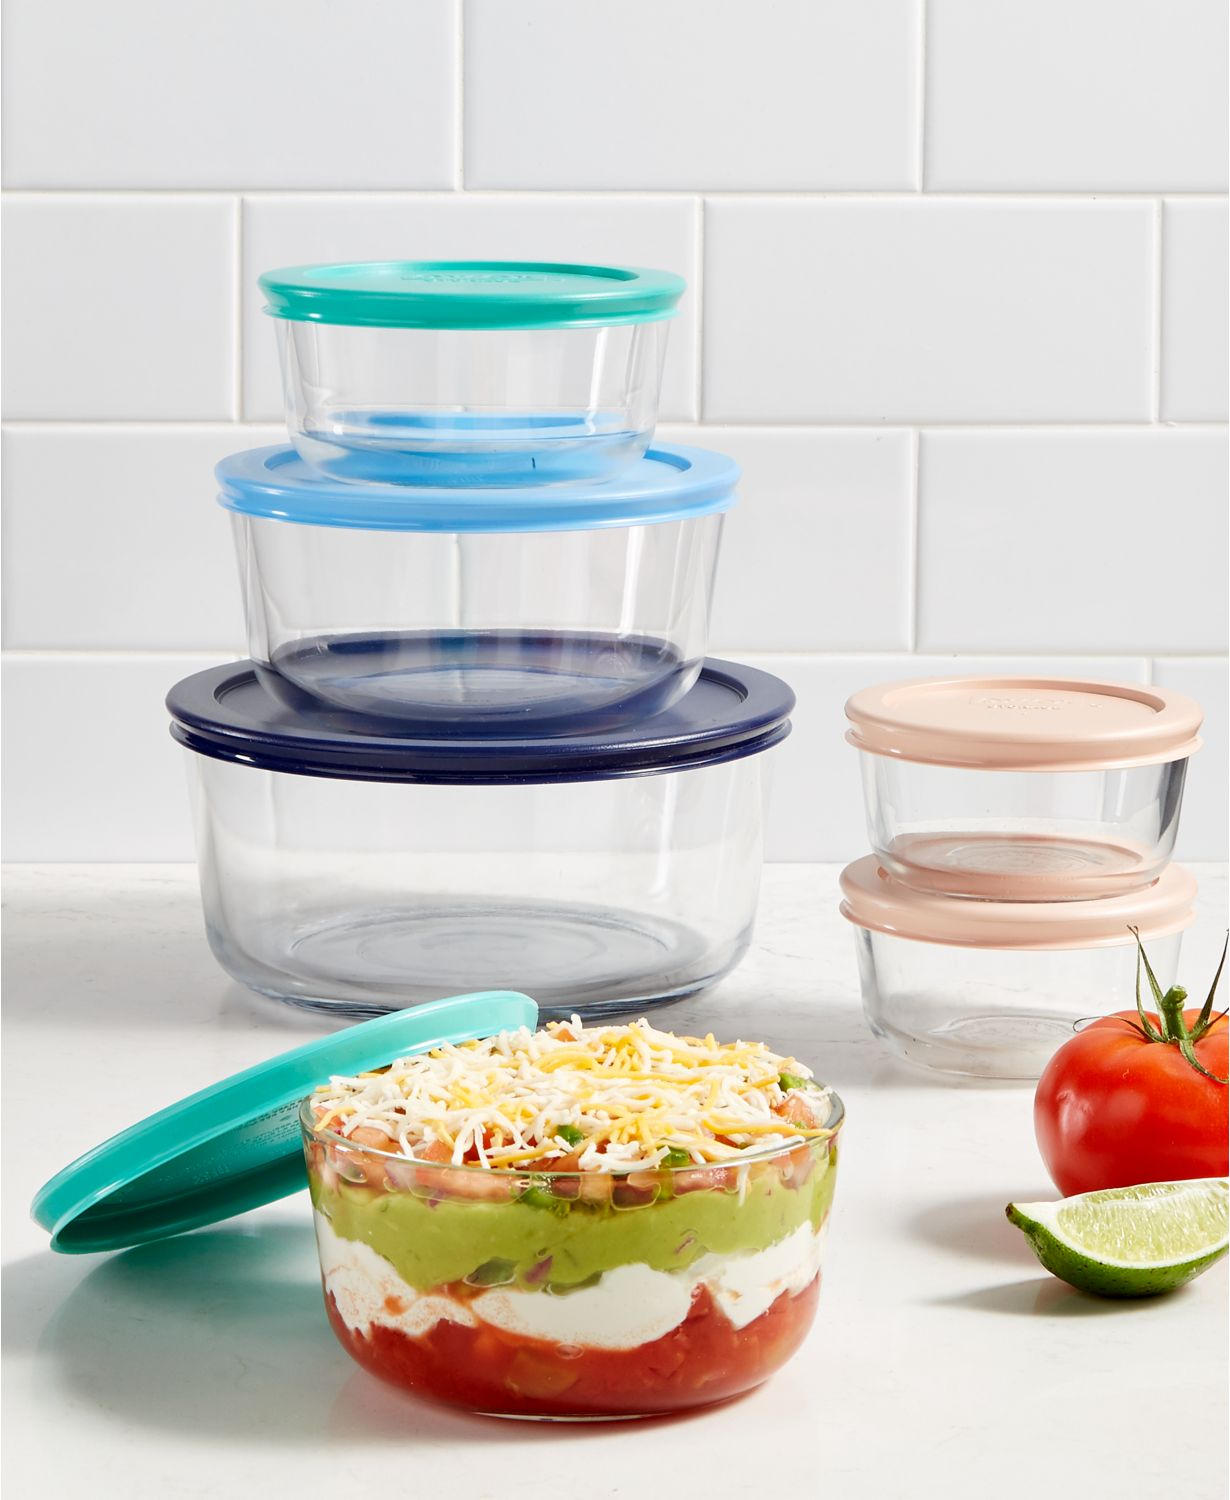 Best Home Buys From Macys Friends And Family Sale 2019